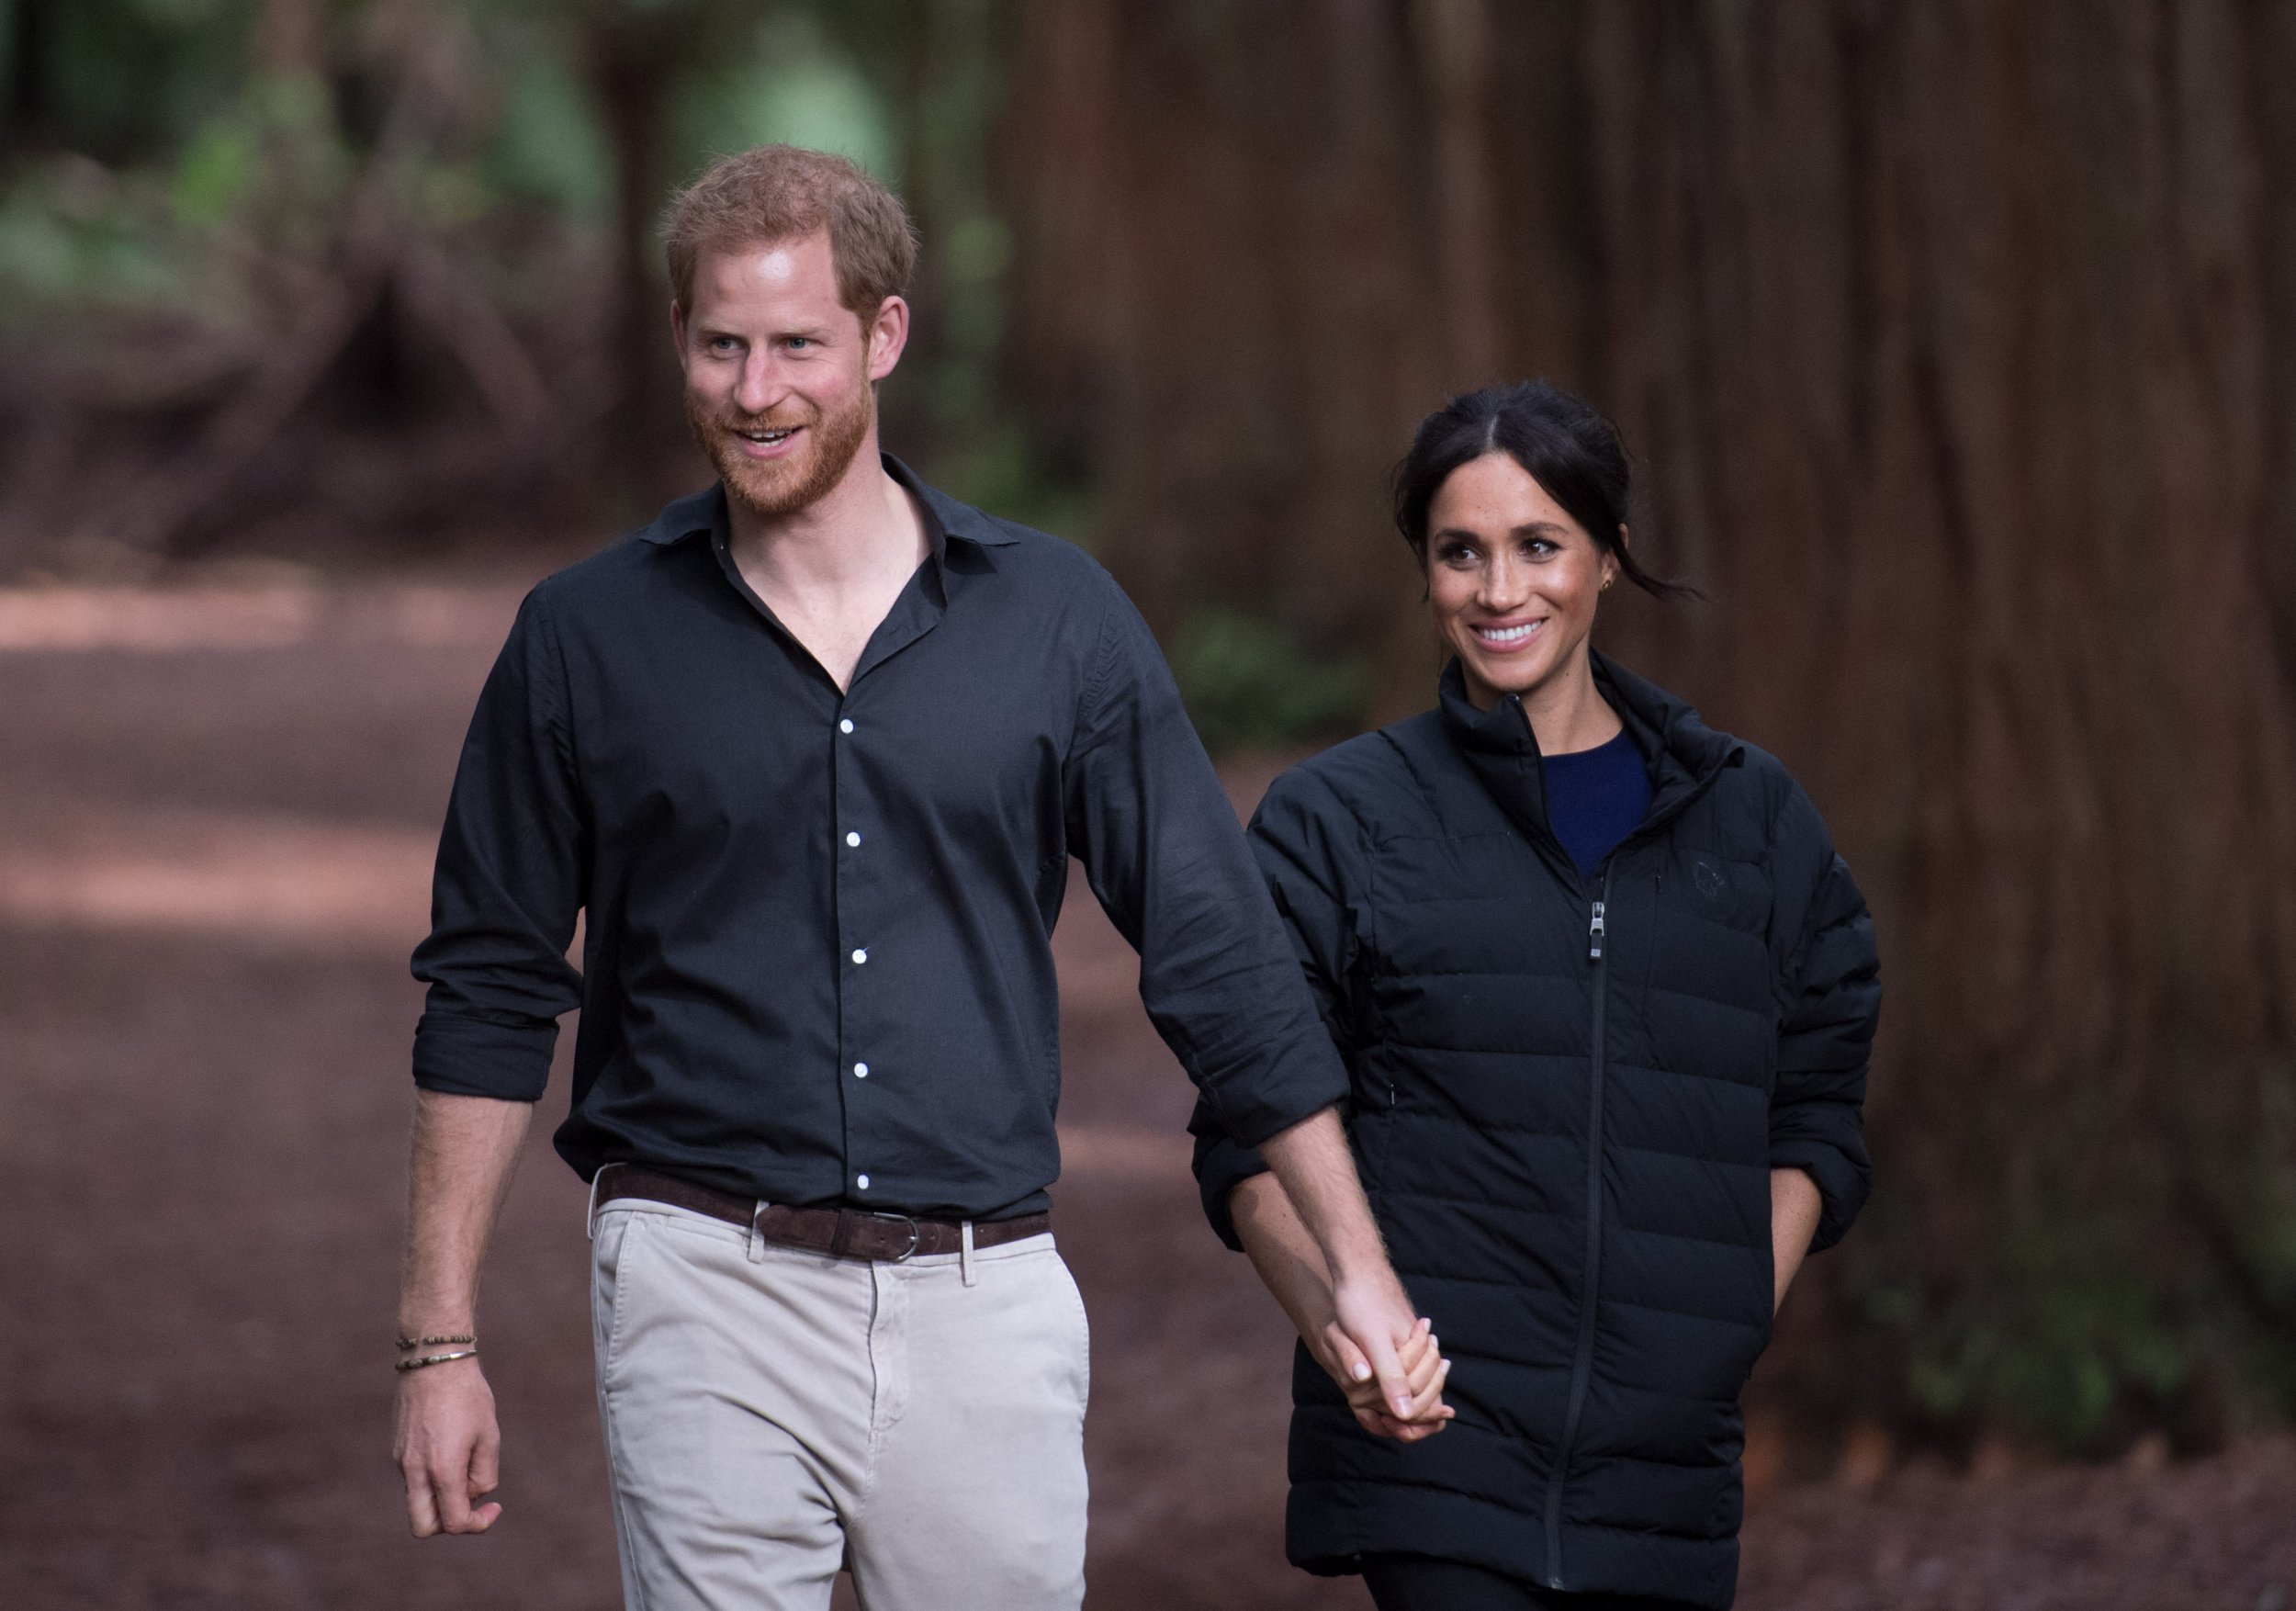 Prince Harry, the Duke of Sussex and Meghan, the Duchess of Sussex visit Redwoods Treewalk Rotorua Pictured: Prince Harry,the Duke of Sussex and Meghan,the Duchess of Sussex Ref: SPL5037914 311018 NON-EXCLUSIVE Picture by: SplashNews.com Splash News and Pictures Los Angeles: 310-821-2666 New York: 212-619-2666 London: 0207 644 7656 Milan: 02 4399 8577 photodesk@splashnews.com World Rights,